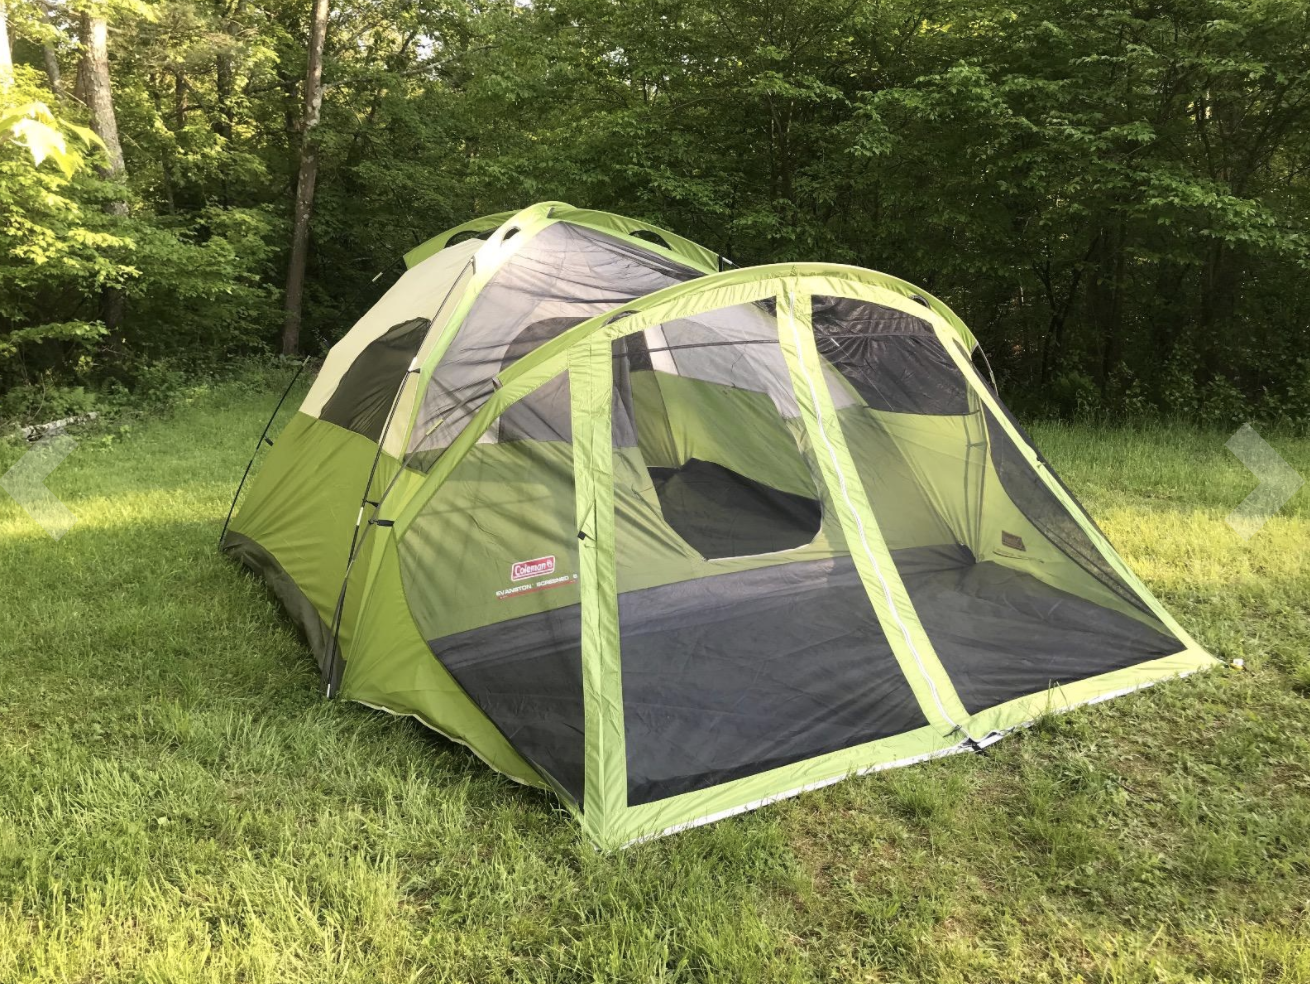 Reviewer photo of tent outside on the grass, showcasing the screened in porch portion